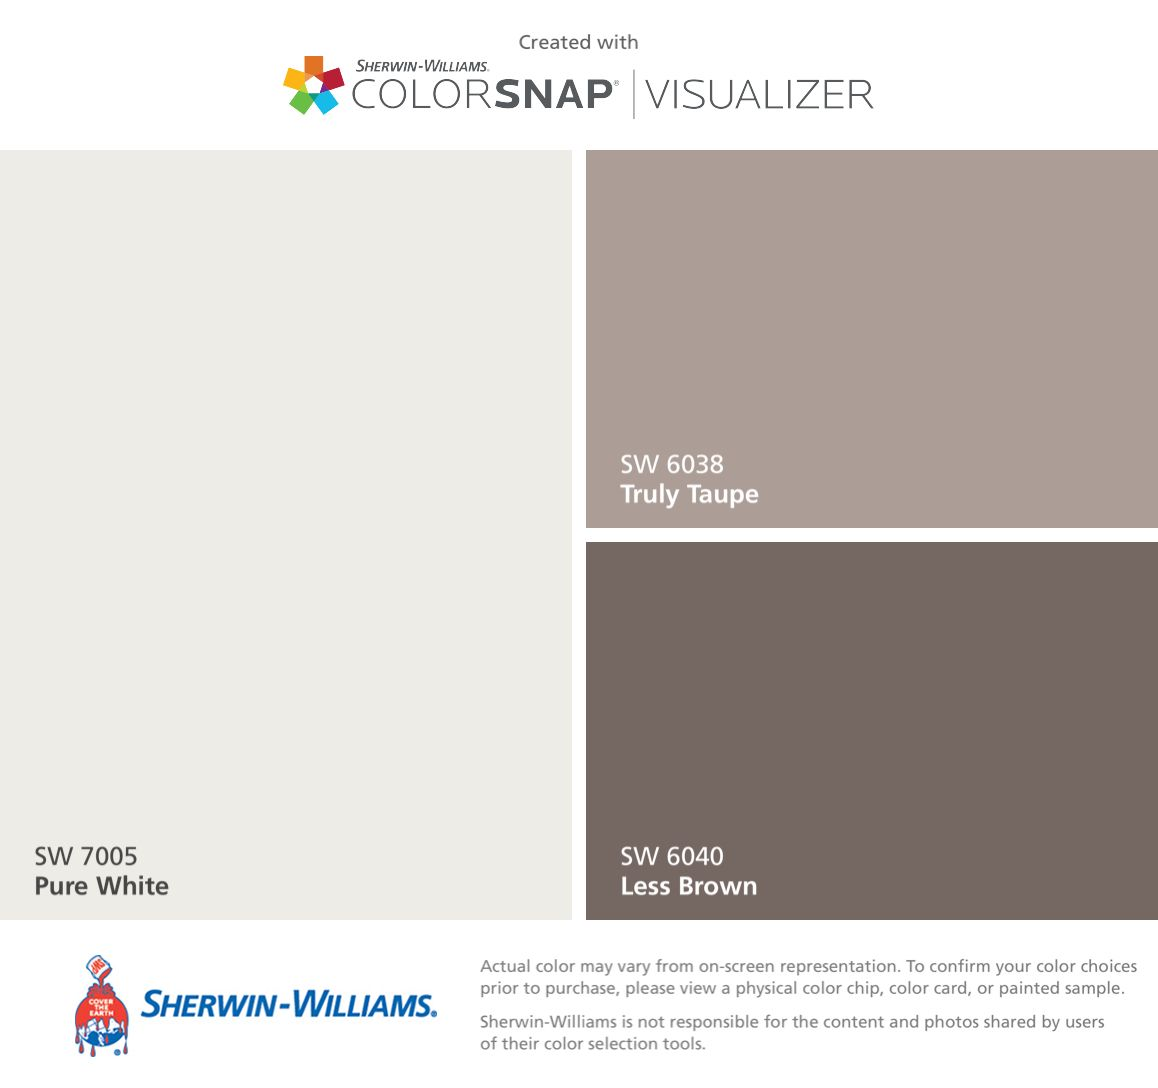 Perfect Greige By Sherwin Williams Neutral Light Tan With: I Found These Colors With ColorSnap® Visualizer For IPhone